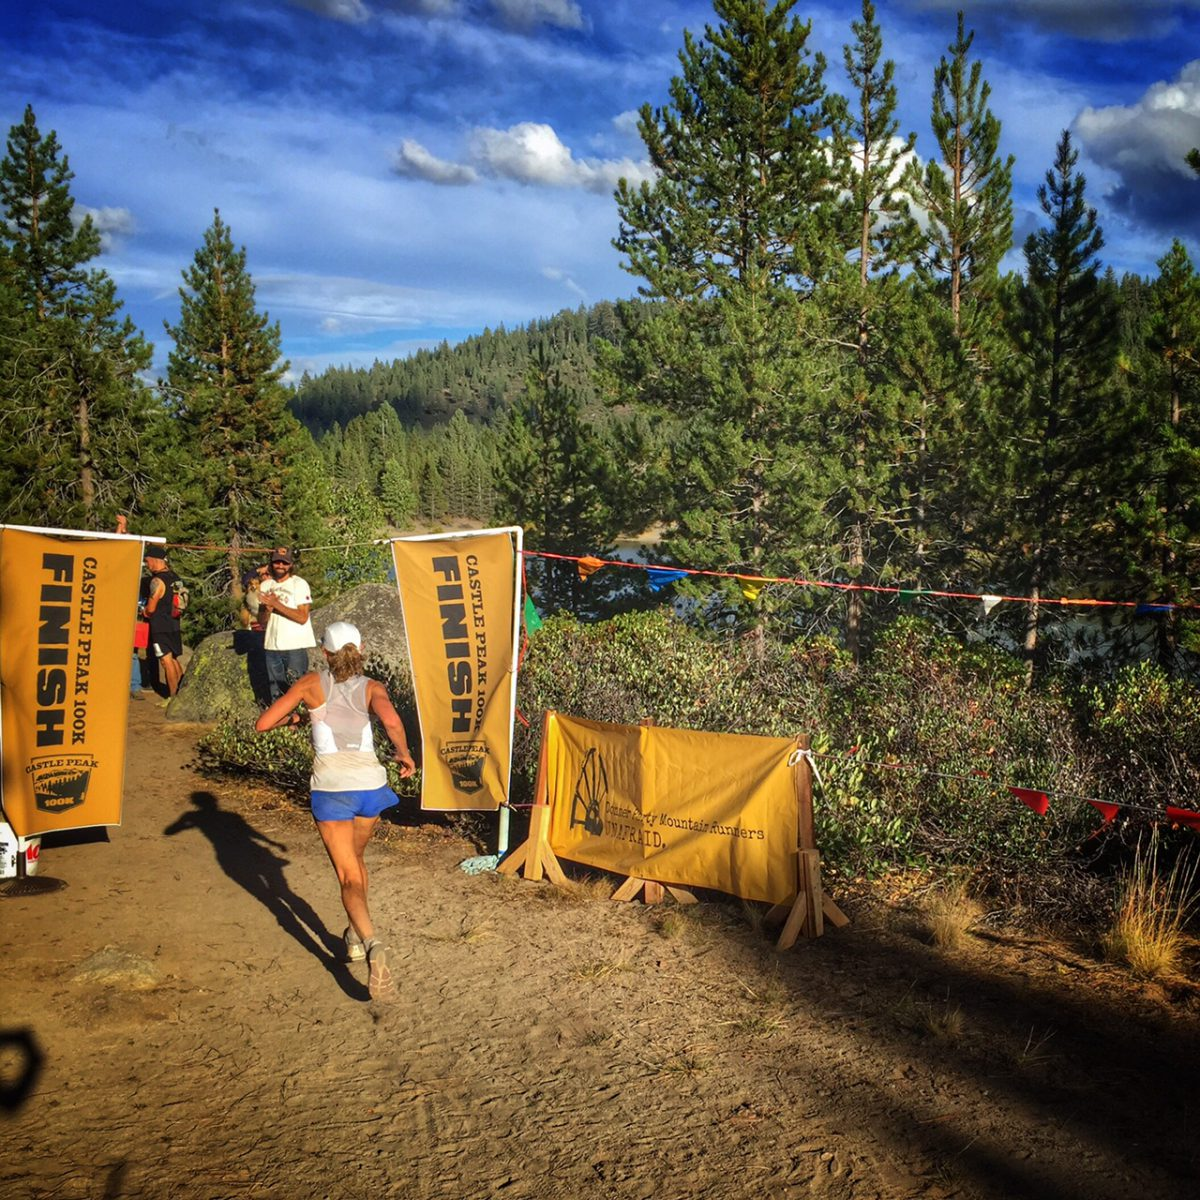 Roxanne Woodhouse (1st female) crosses the finish line. (Photo: Jenelle Potvin)